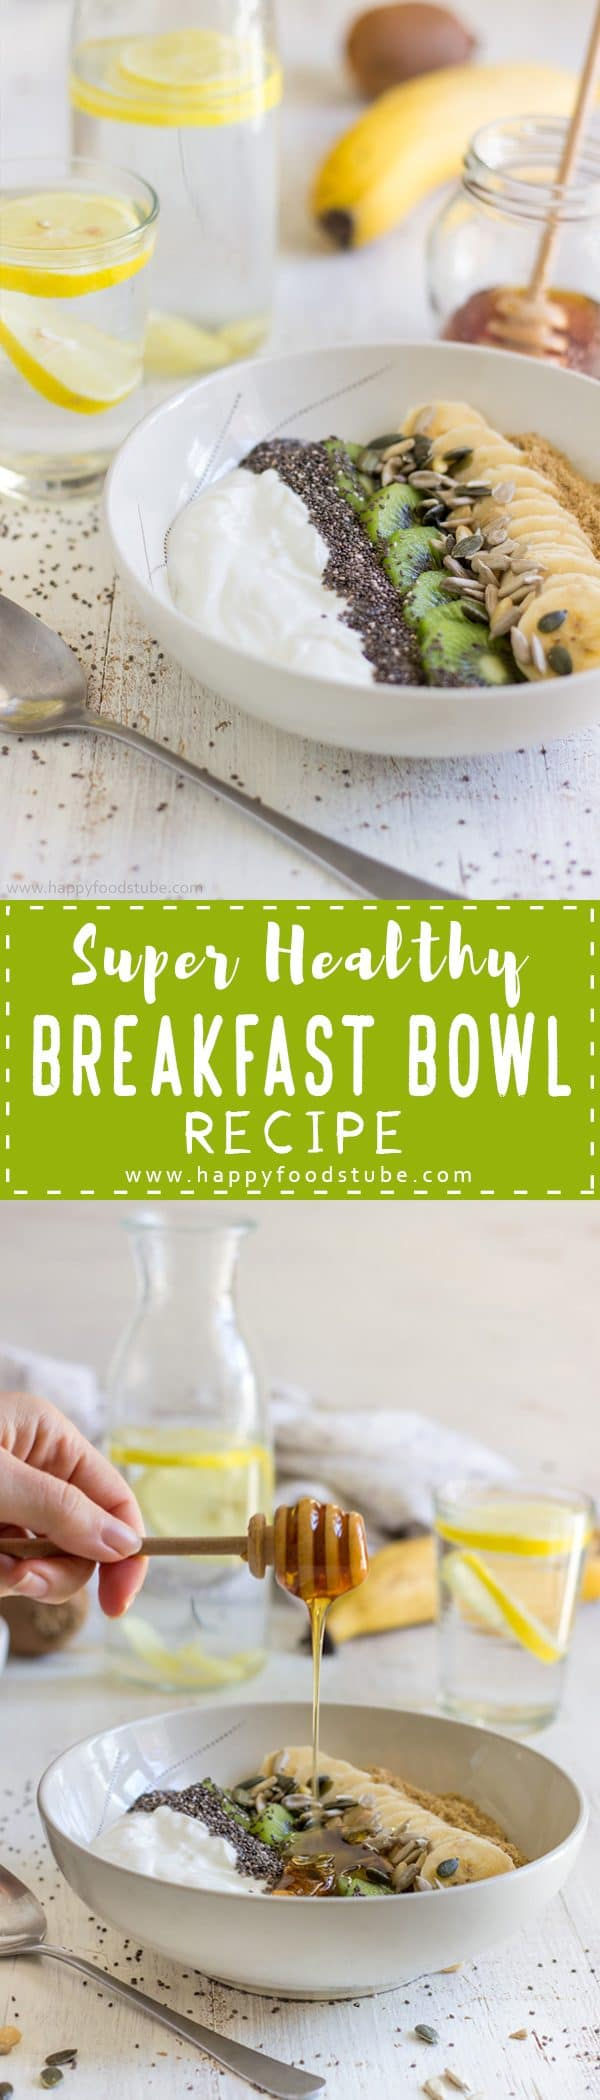 Super-Healthy-Breakfast-Bowl-Recipe